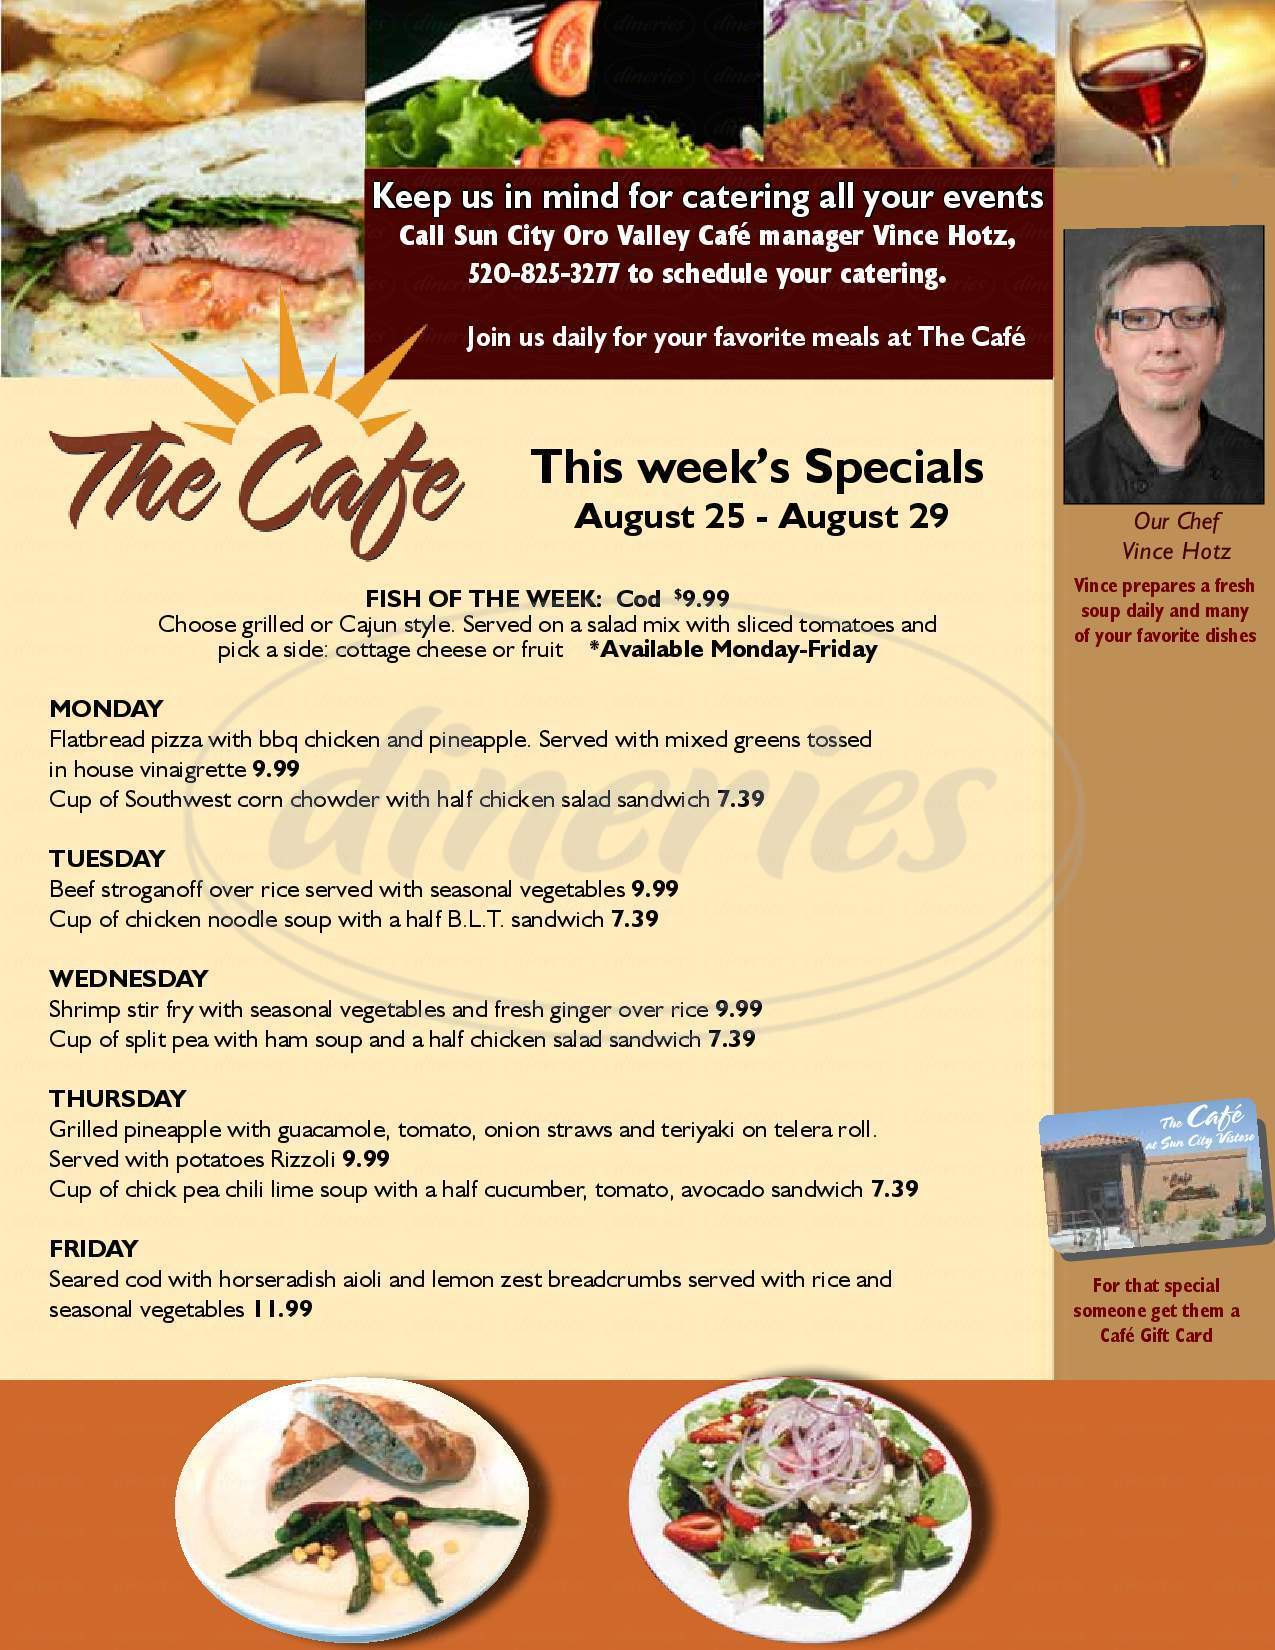 menu for The Cafe at Sun City Oro Valley